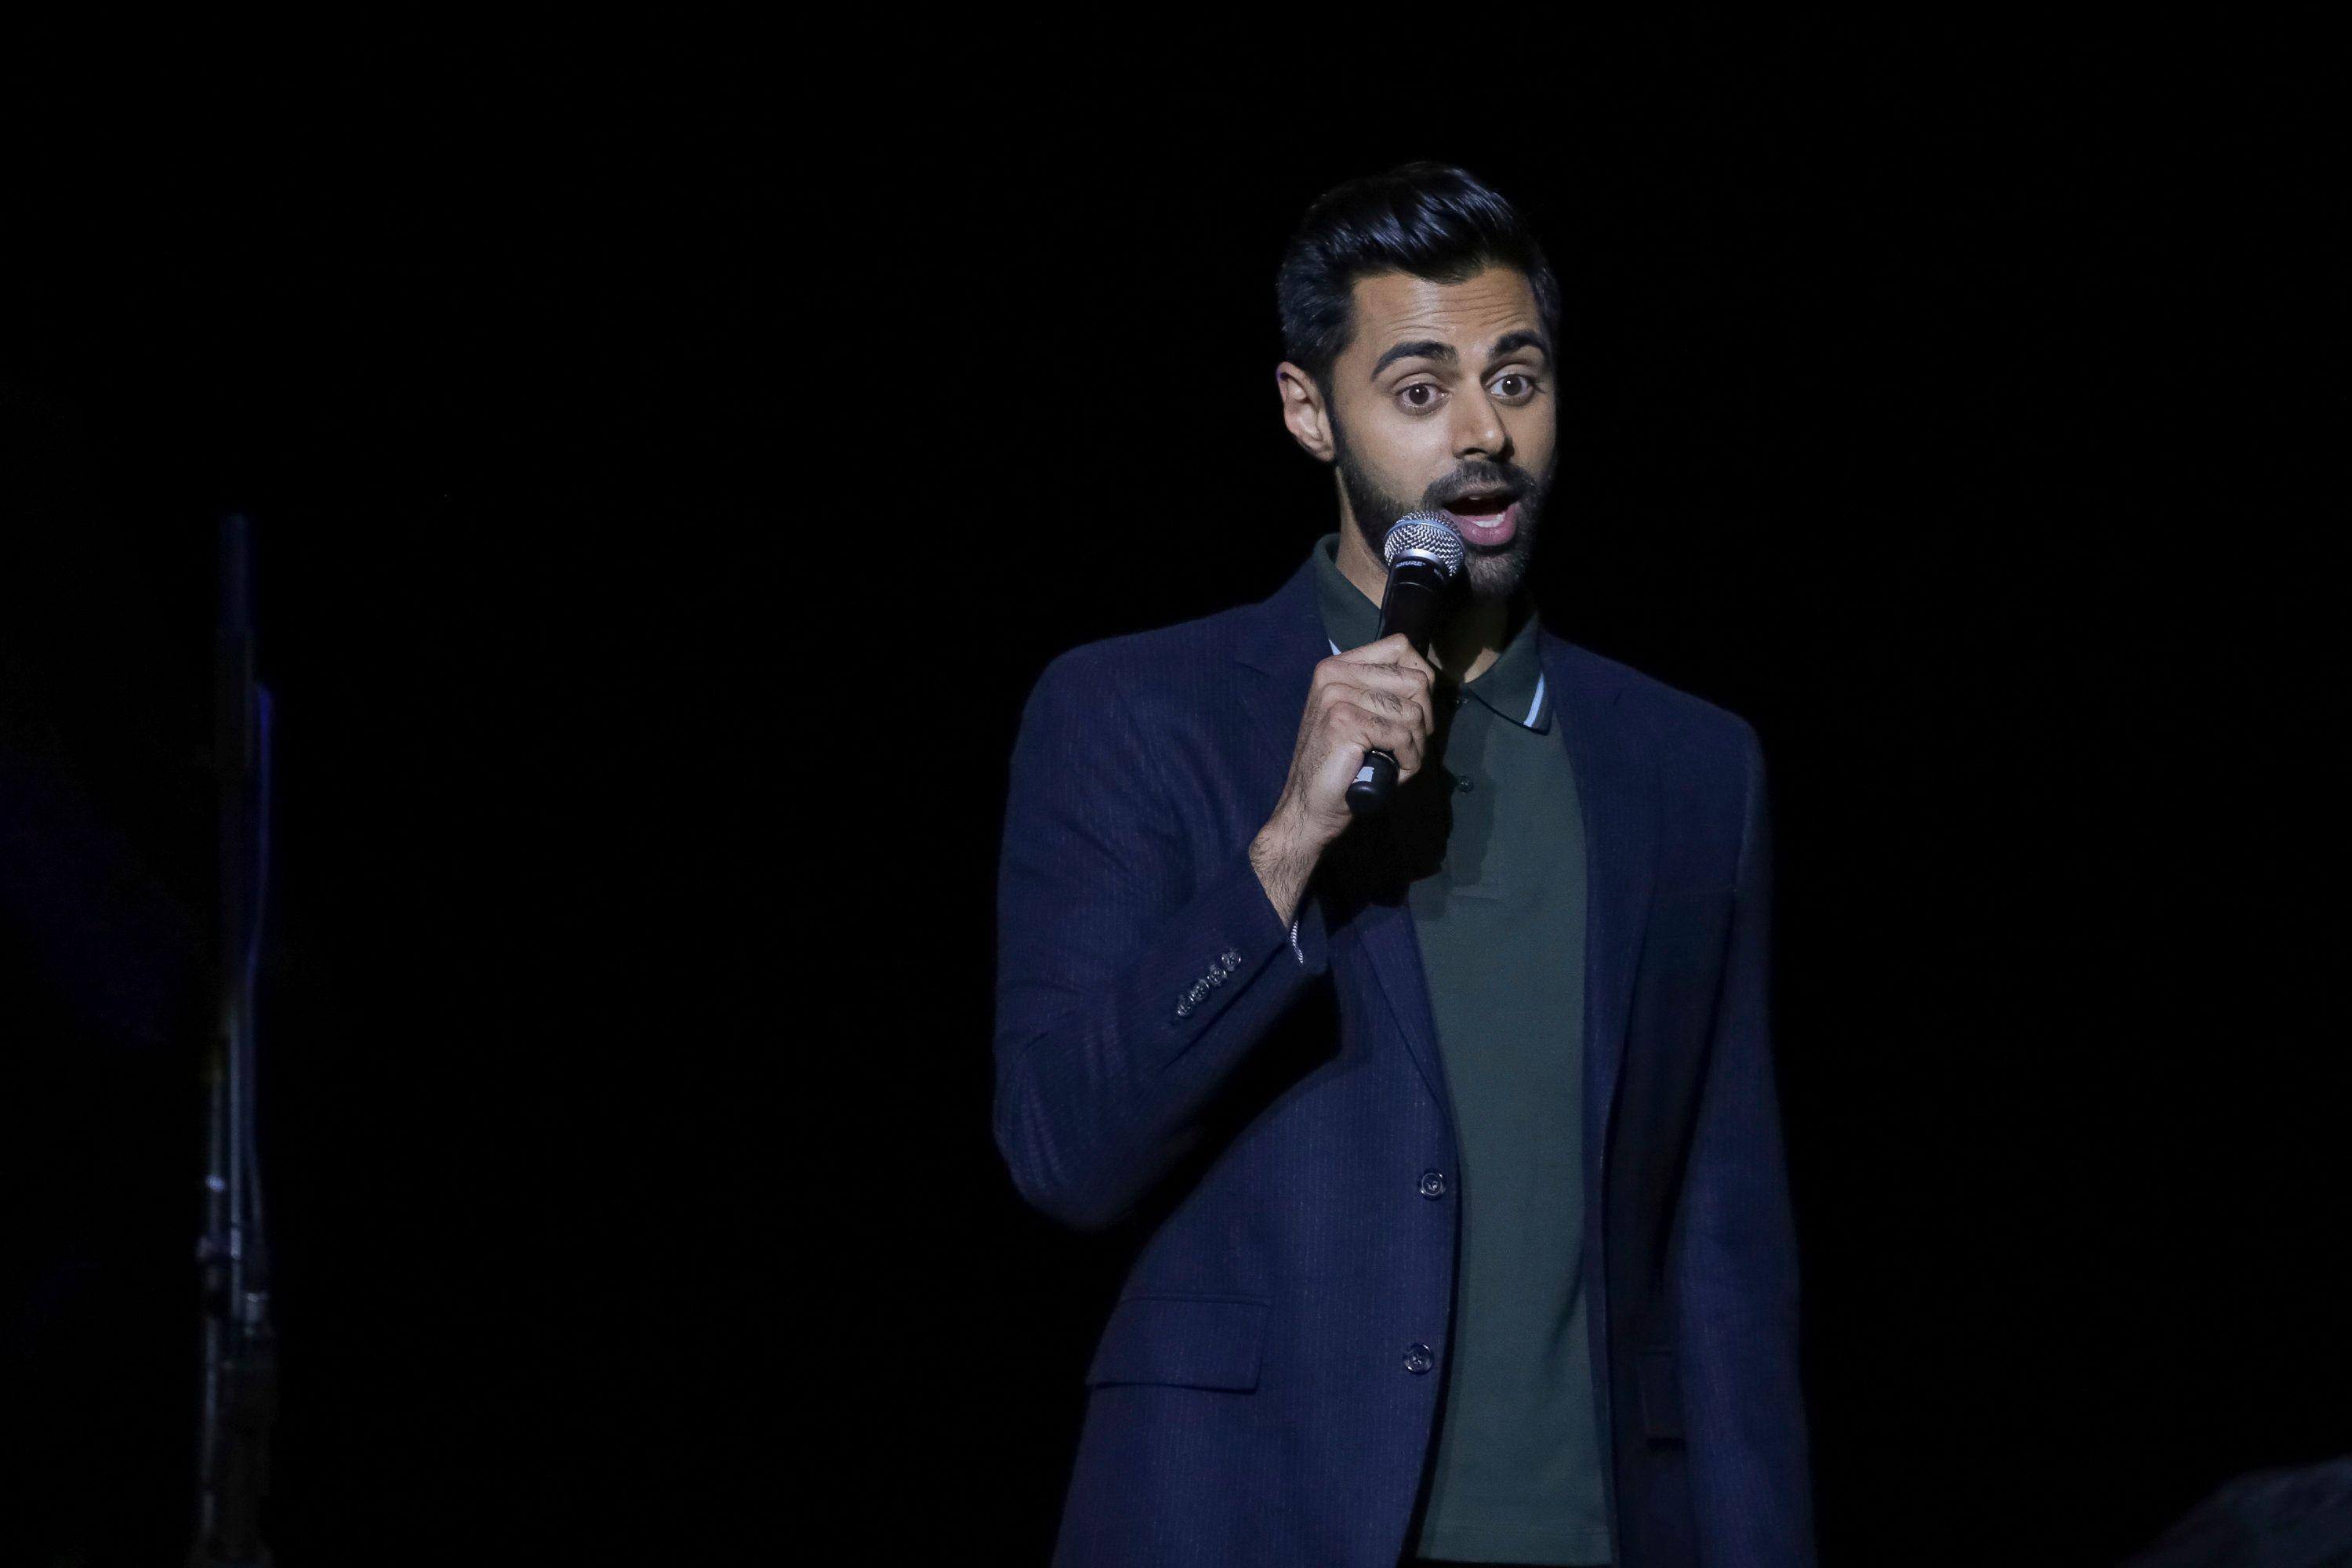 Comedian Hasan Minhaj performs on stage during the 11th Annual Stand Up for Heroes benefit, presented by the New York Comedy Festival and The Bob Woodruff Foundation, at the Theater at Madison Square Garden on Tuesday, Nov. 7, 2017, in New York. (Photo by Brent N. Clarke/Invision/AP)